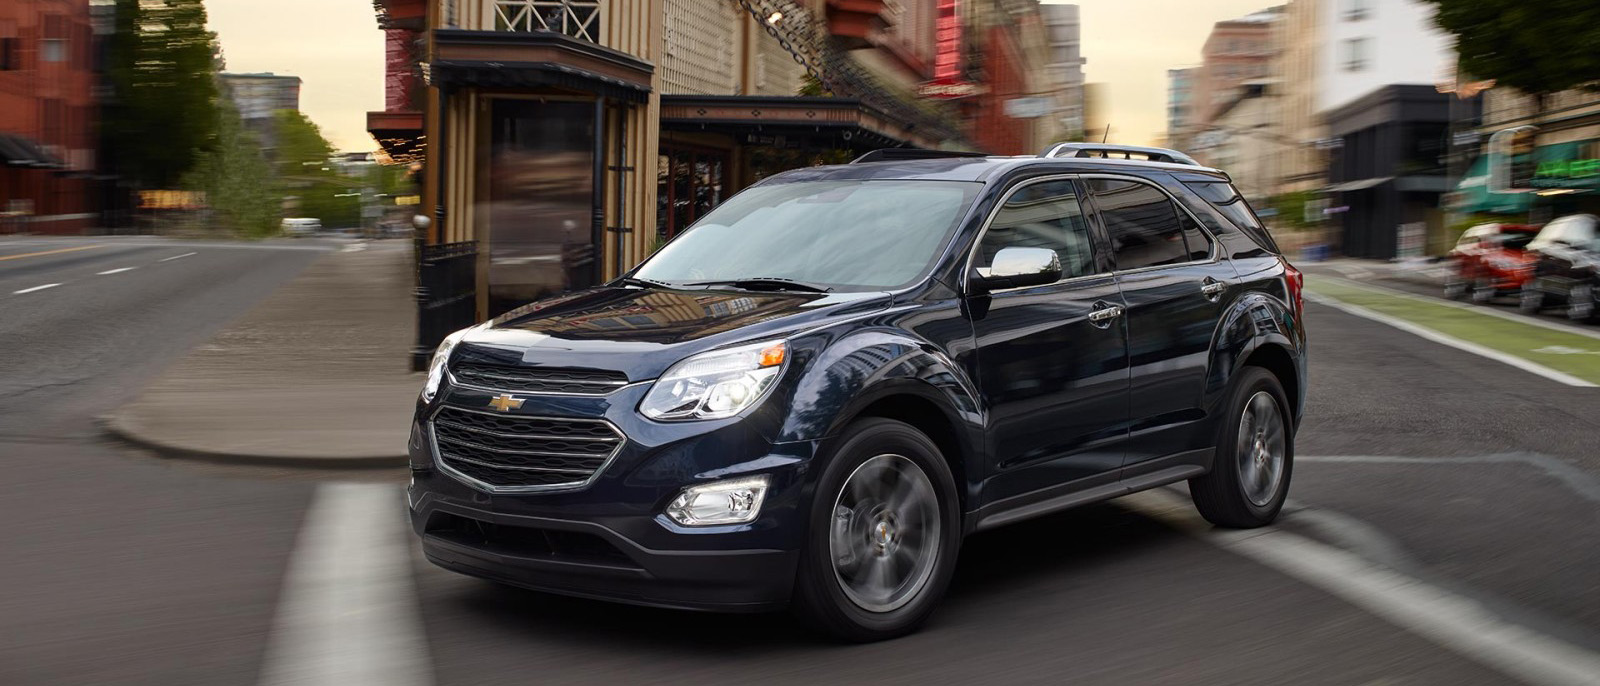 2017 chevrolet equinox crossover suv | model overview | gill chevrolet